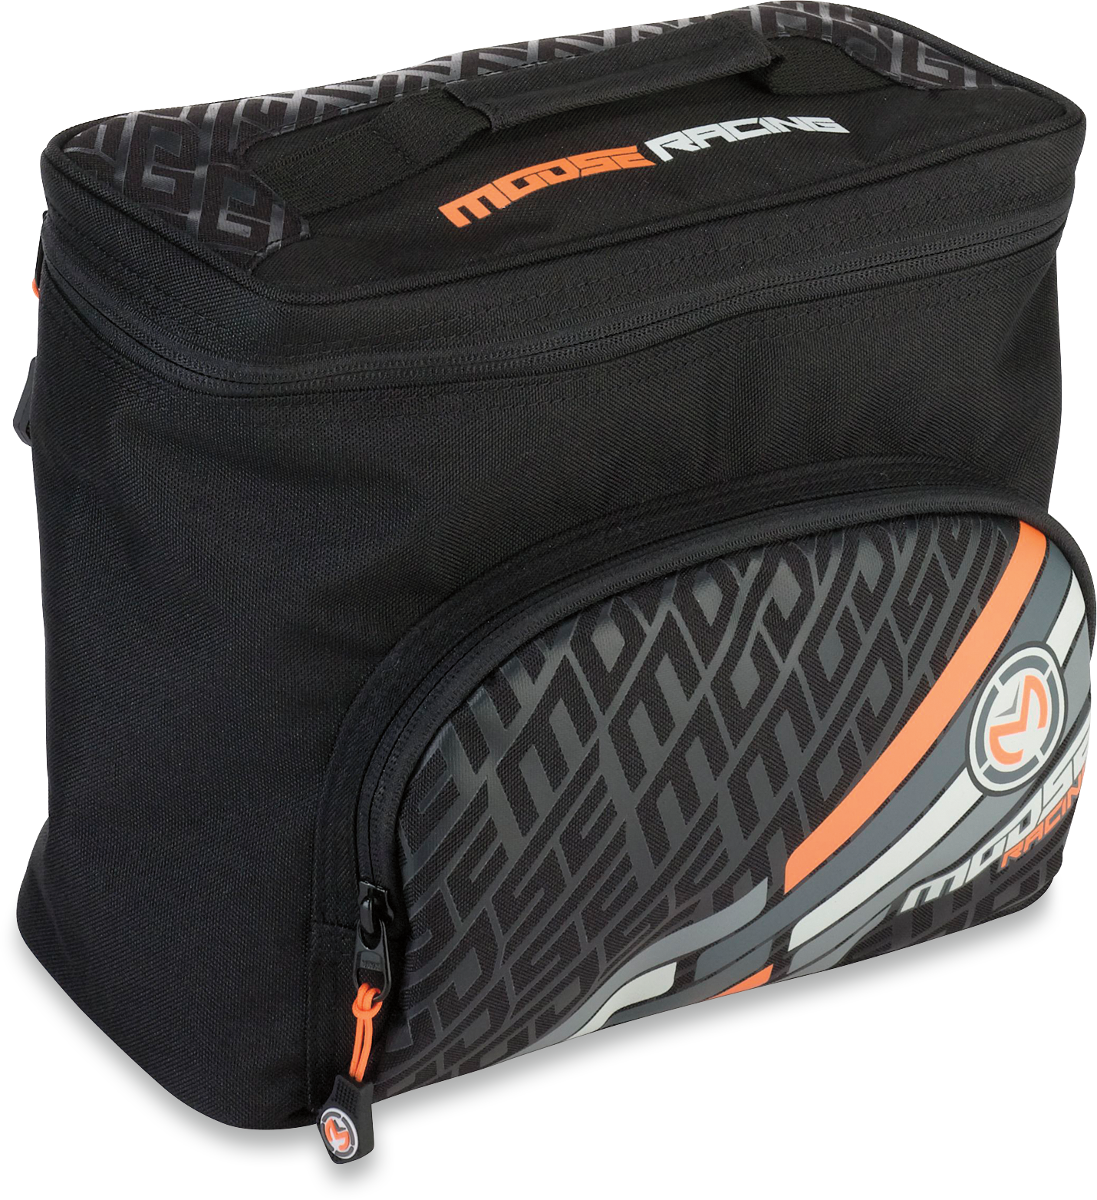 Moose Racing Black Off Road Riding Dirt Bike Racing Padded Goggle Bag